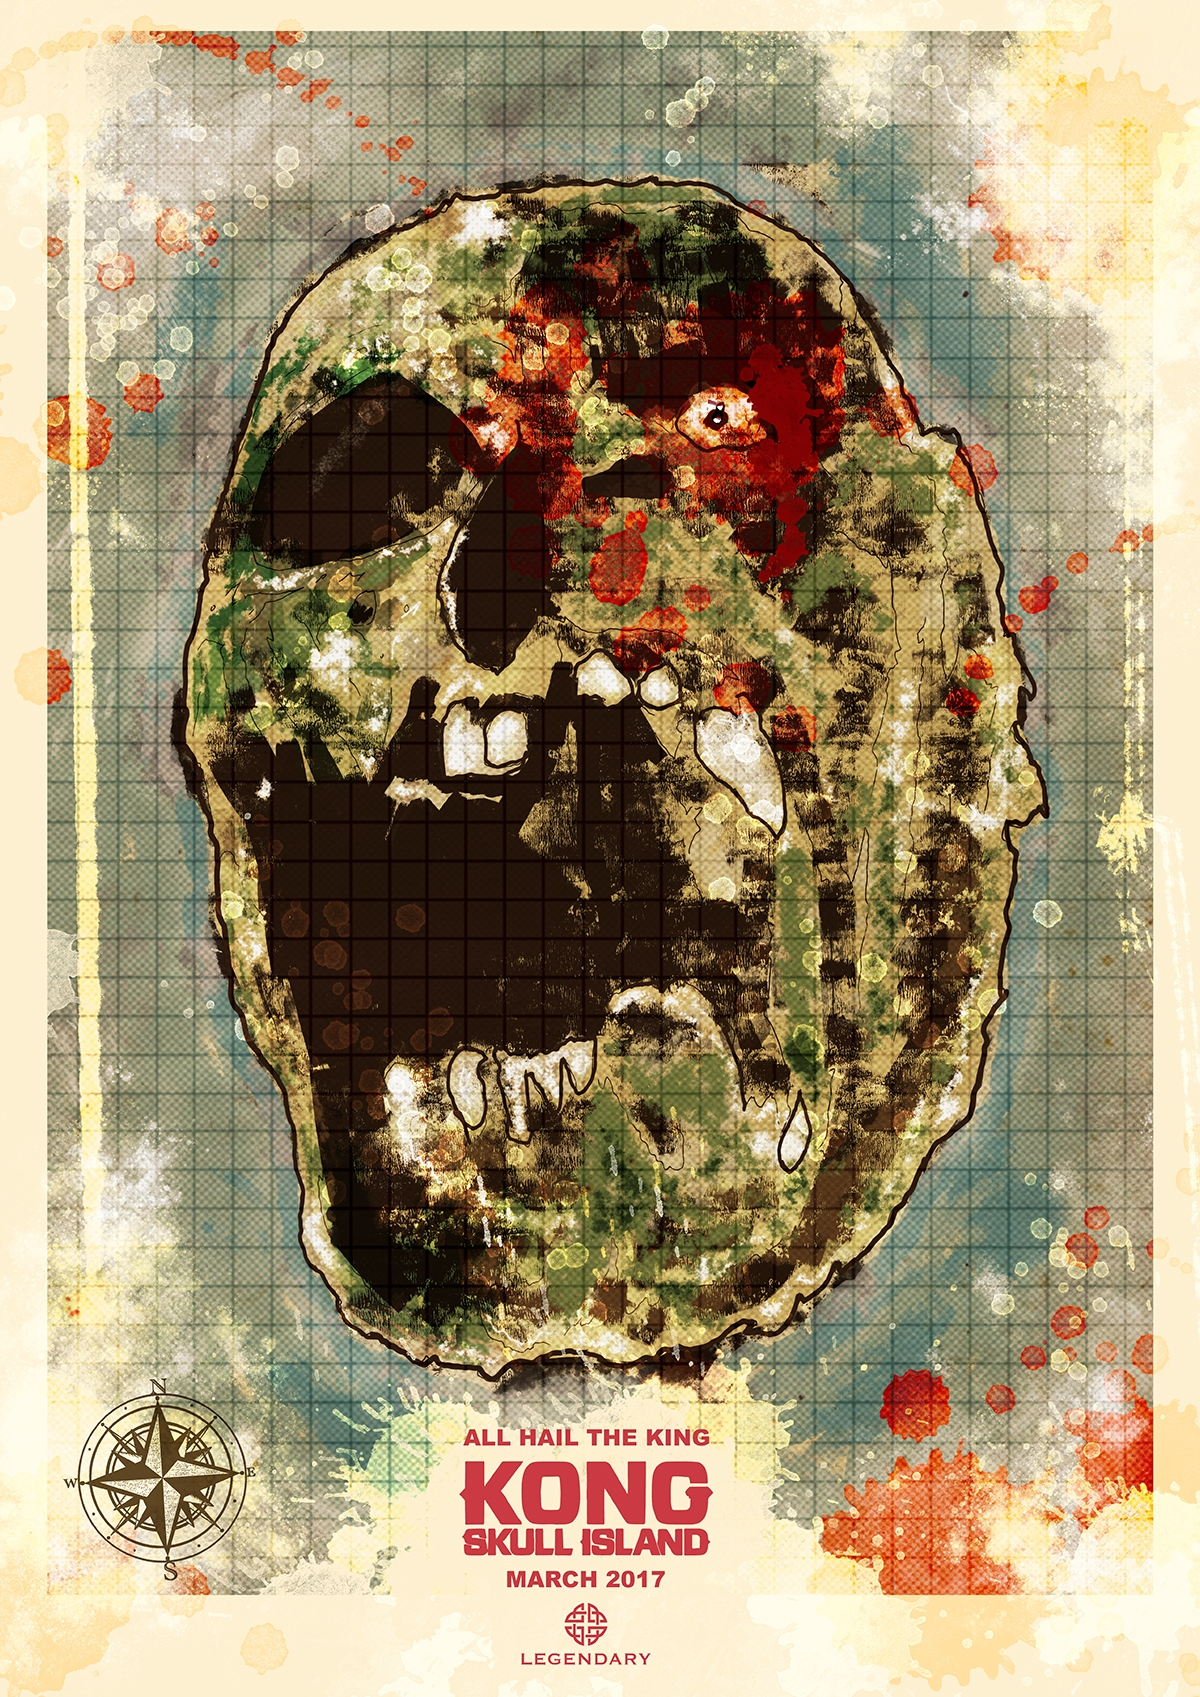 KONG SKULL ISLAND map poster design... - PosterSpy on national treasure map, the hunger games map, the lion king map, monsters university map, raiders of the lost ark map, robin hood map, headless horseman map, lone survivor map, the most dangerous game map, saving private ryan map, the ring map, a princess of mars map, jurassic park map,